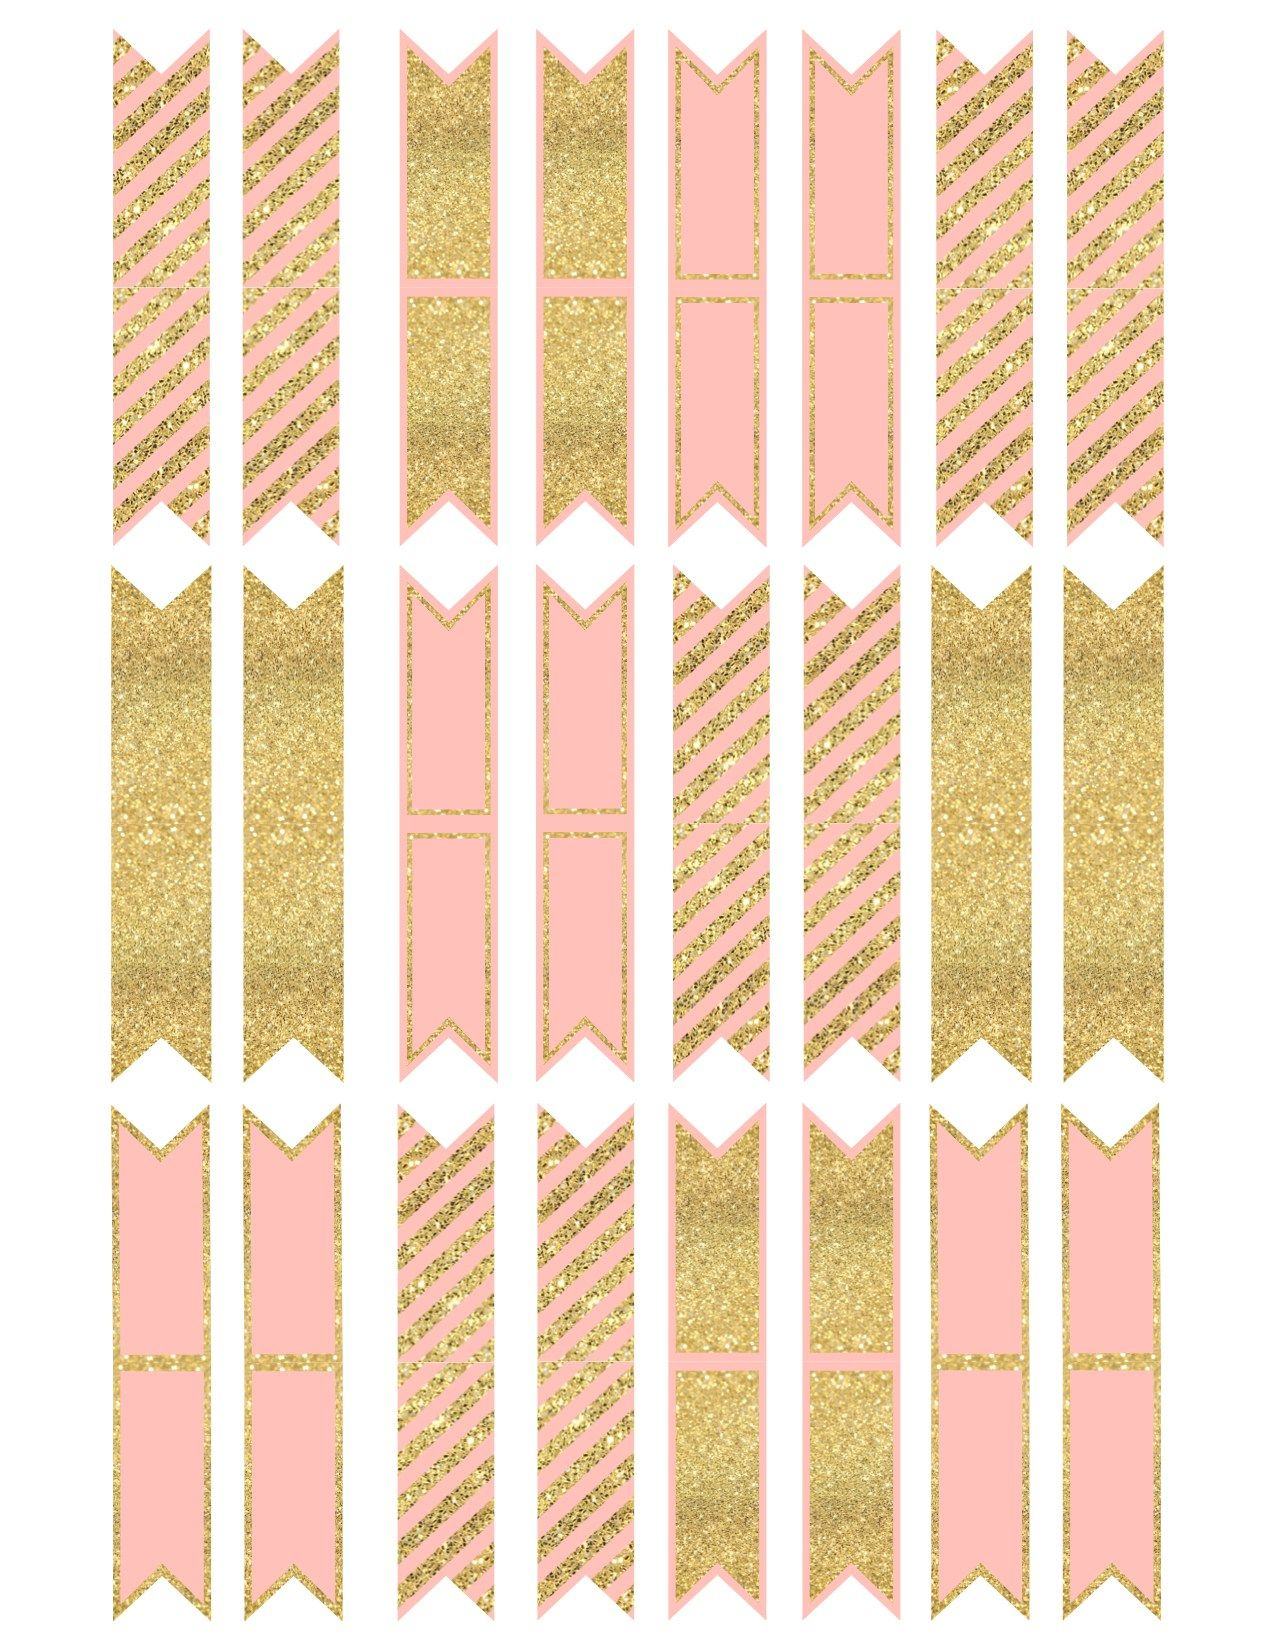 Pink And Gold Cupcake Topper Flags Or Bunting   Diy   Pinterest - Baby Shower Bunting Free Printable